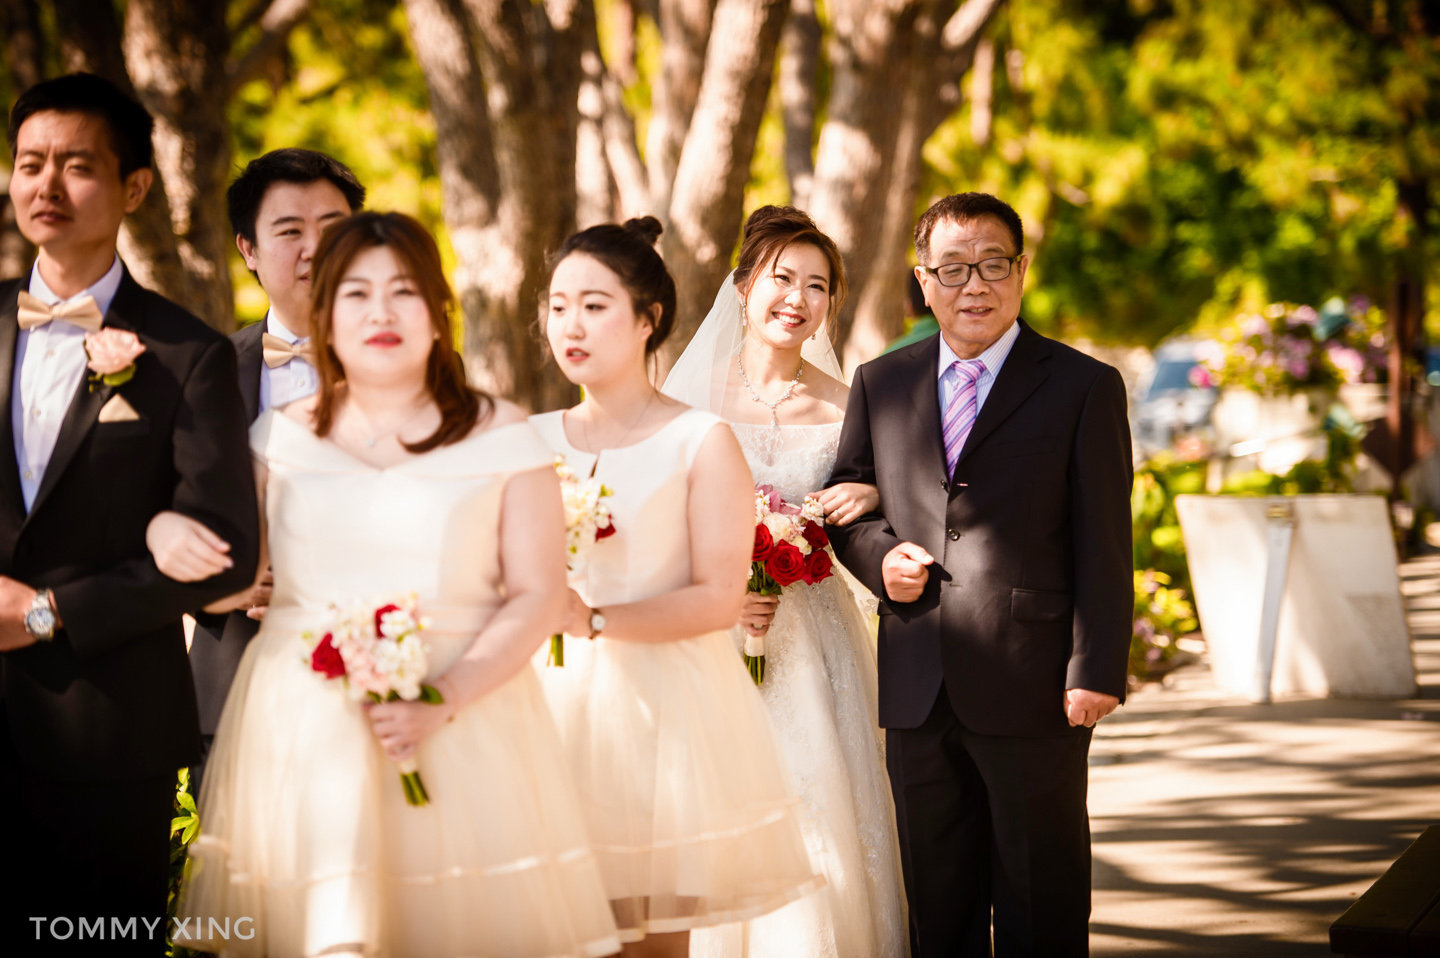 Los Angeles Wedding Photographer 洛杉矶婚礼婚纱摄影师 Tommy Xing-105.JPG